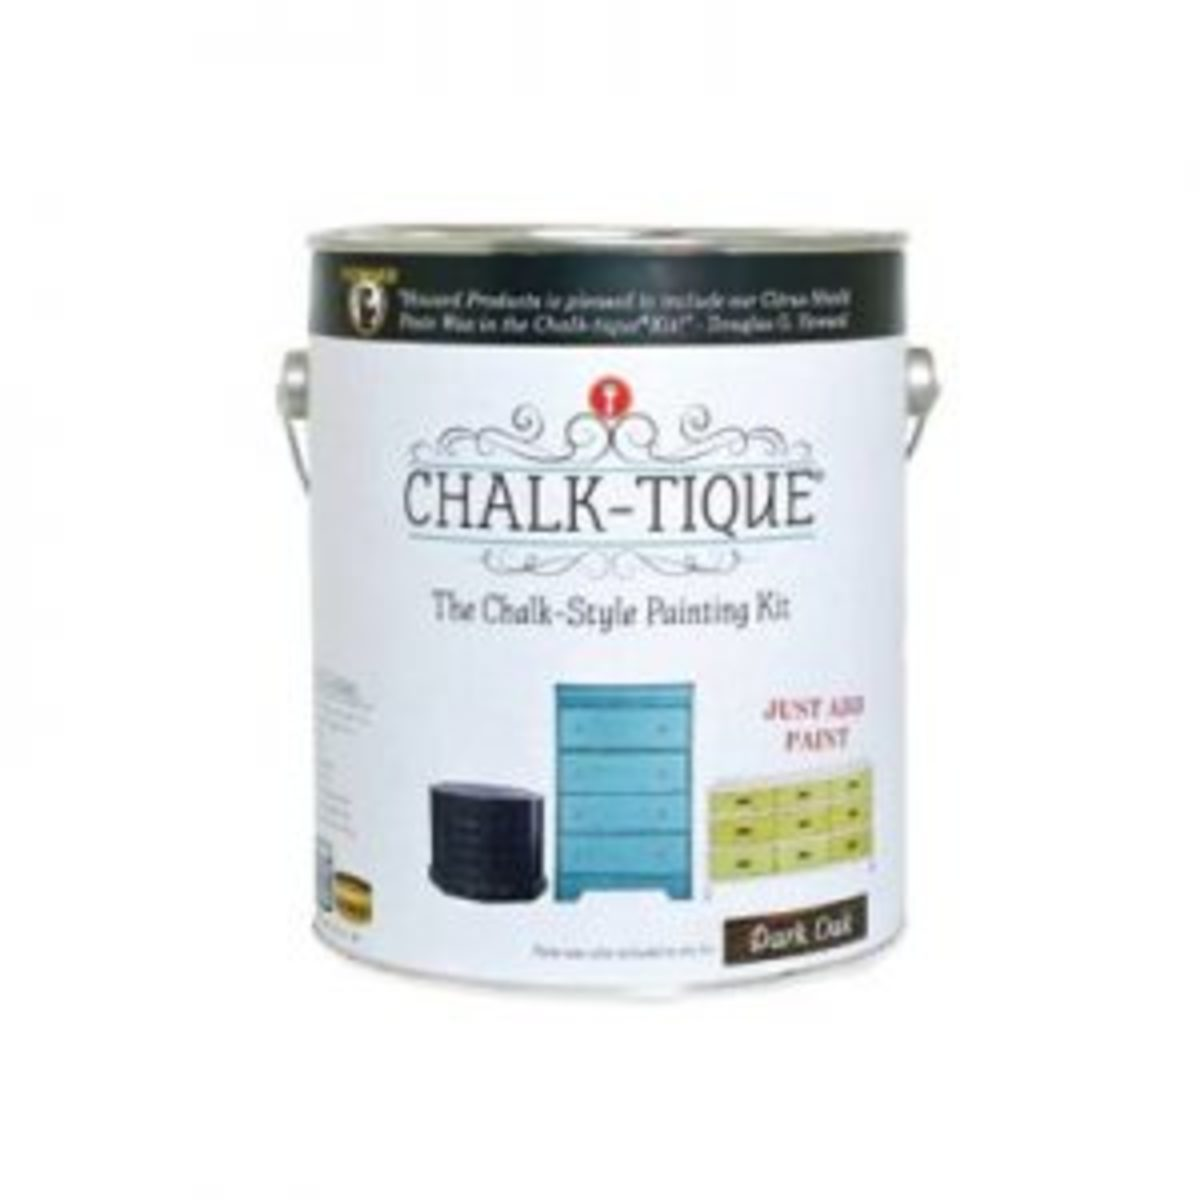 Chalk-tique Kit, $69.95. Each kit includes the materials needed to complete a painting project: Chalk-tique Additive 16 oz. and 1/4-cup measuring scoop; choice of Neutral or Dark Oak Paste Wax, 11 oz.; Concentrated Wood Soap; paint brush; stir stick; 2 polishing cloths; cheese cloth; coarse grit sandpaper sheet; fine grit sandpaper sheet; 1 gallon paint can for mixing.